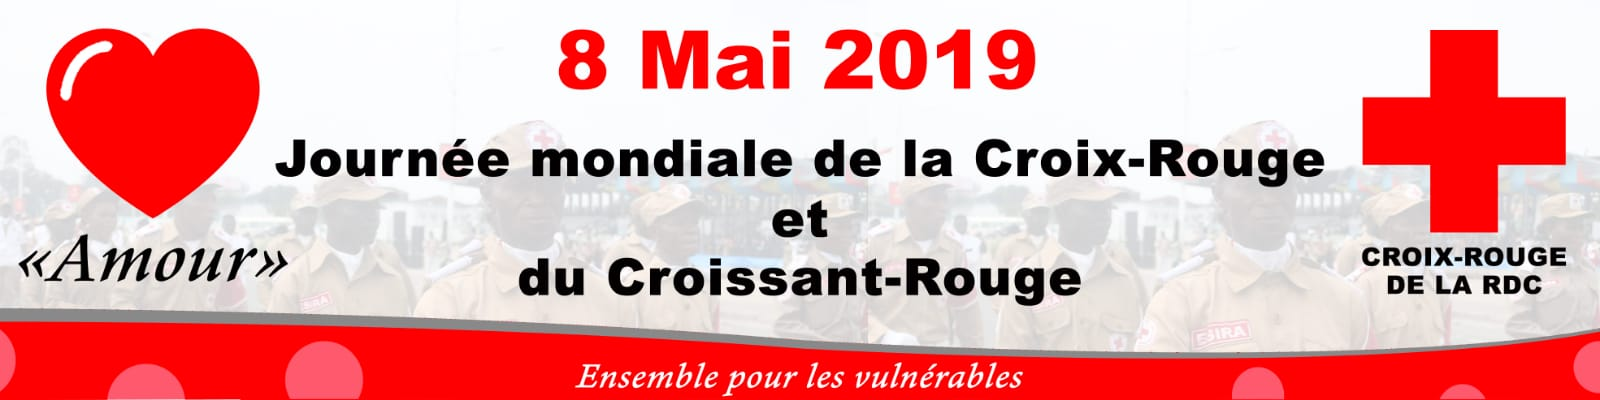 8 MAI 2019, MESSAGE DU PRESIDENT NATIONAL